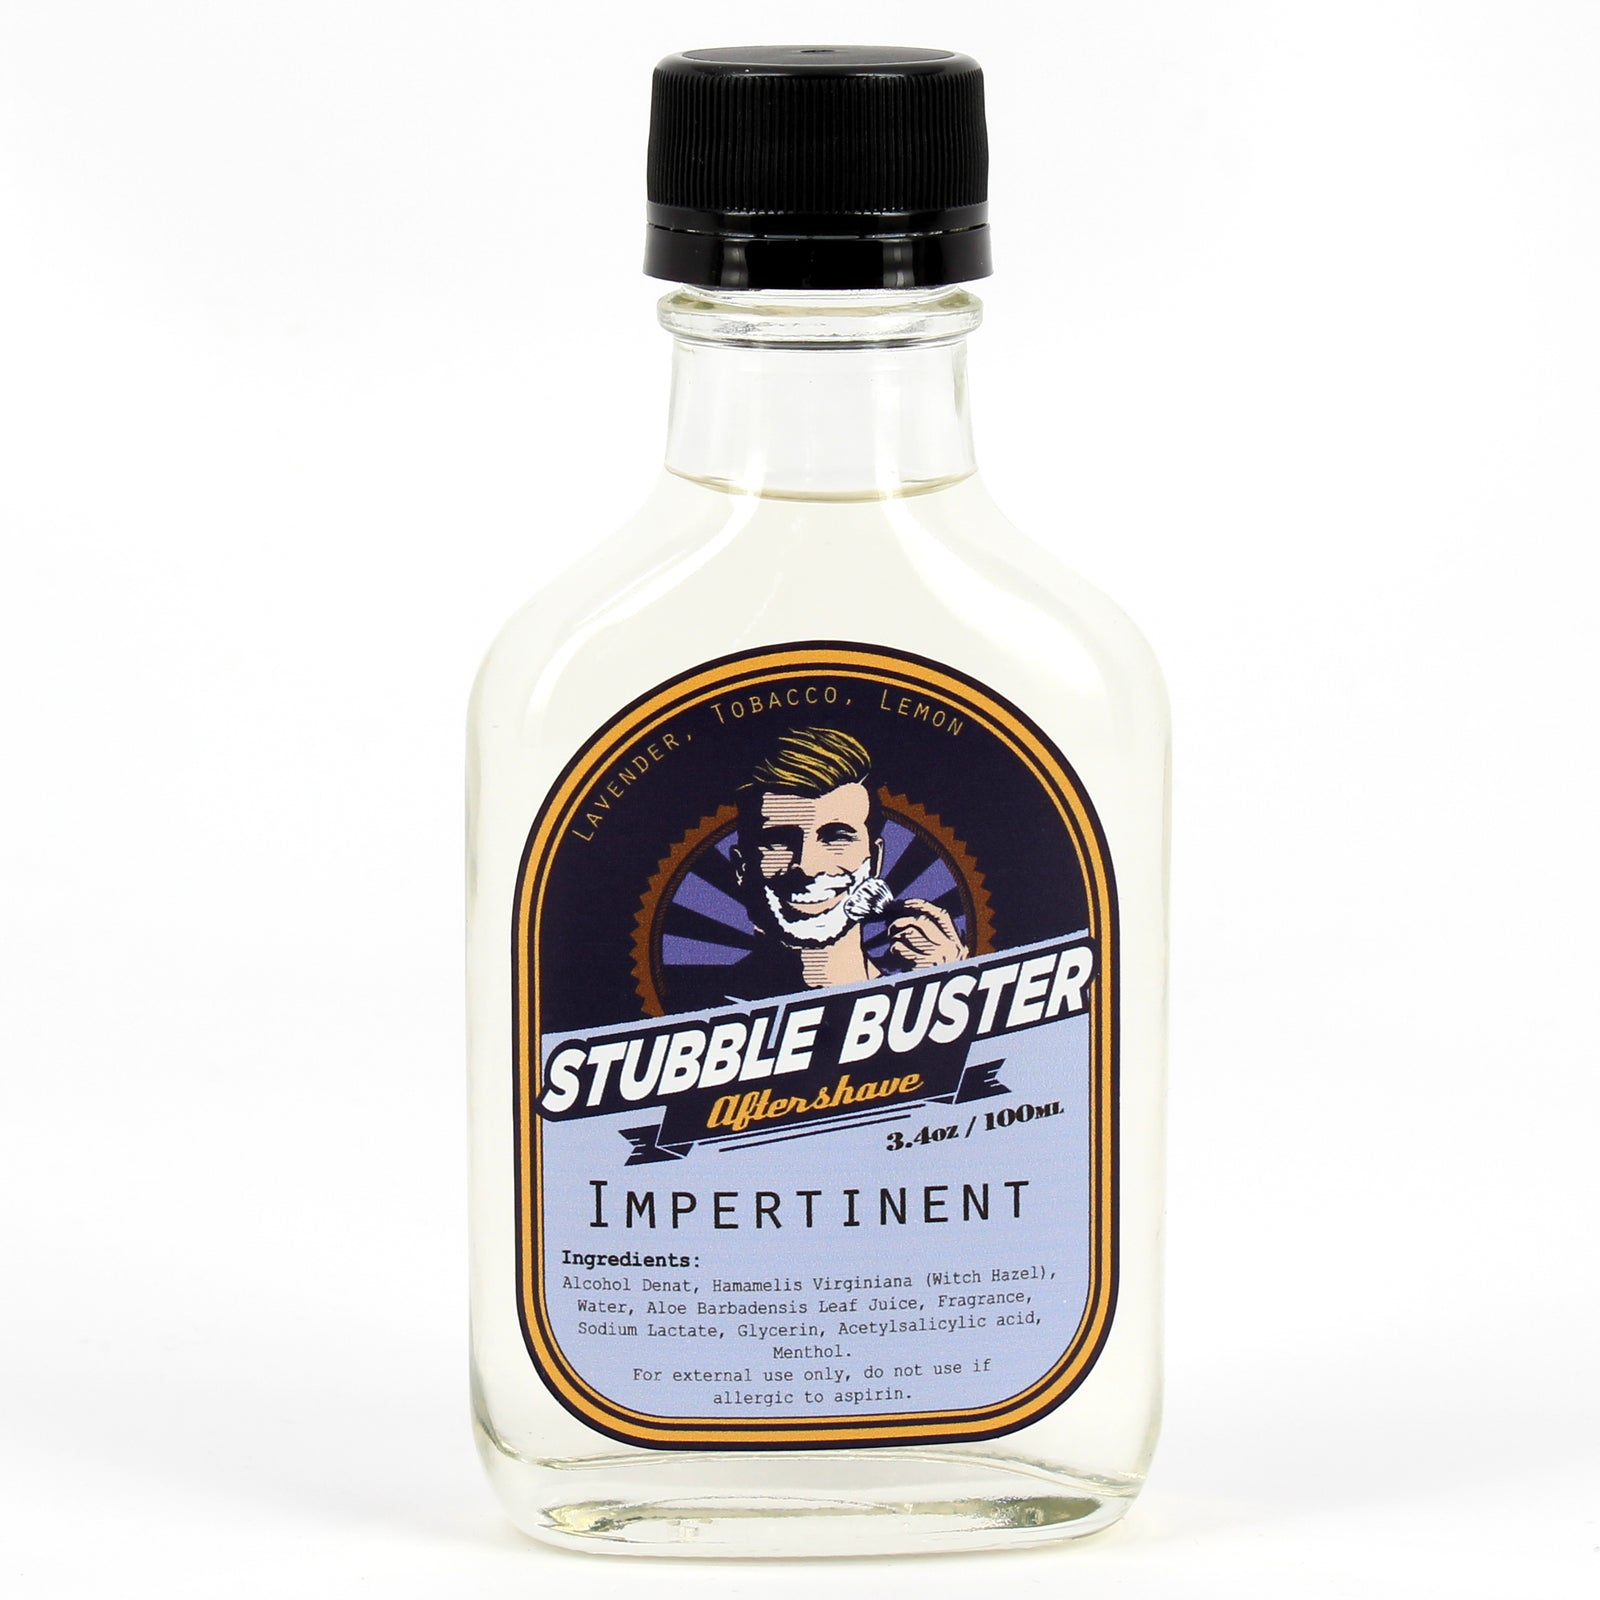 Stubble Buster - Impertinent - Handmade Aftershave Splash